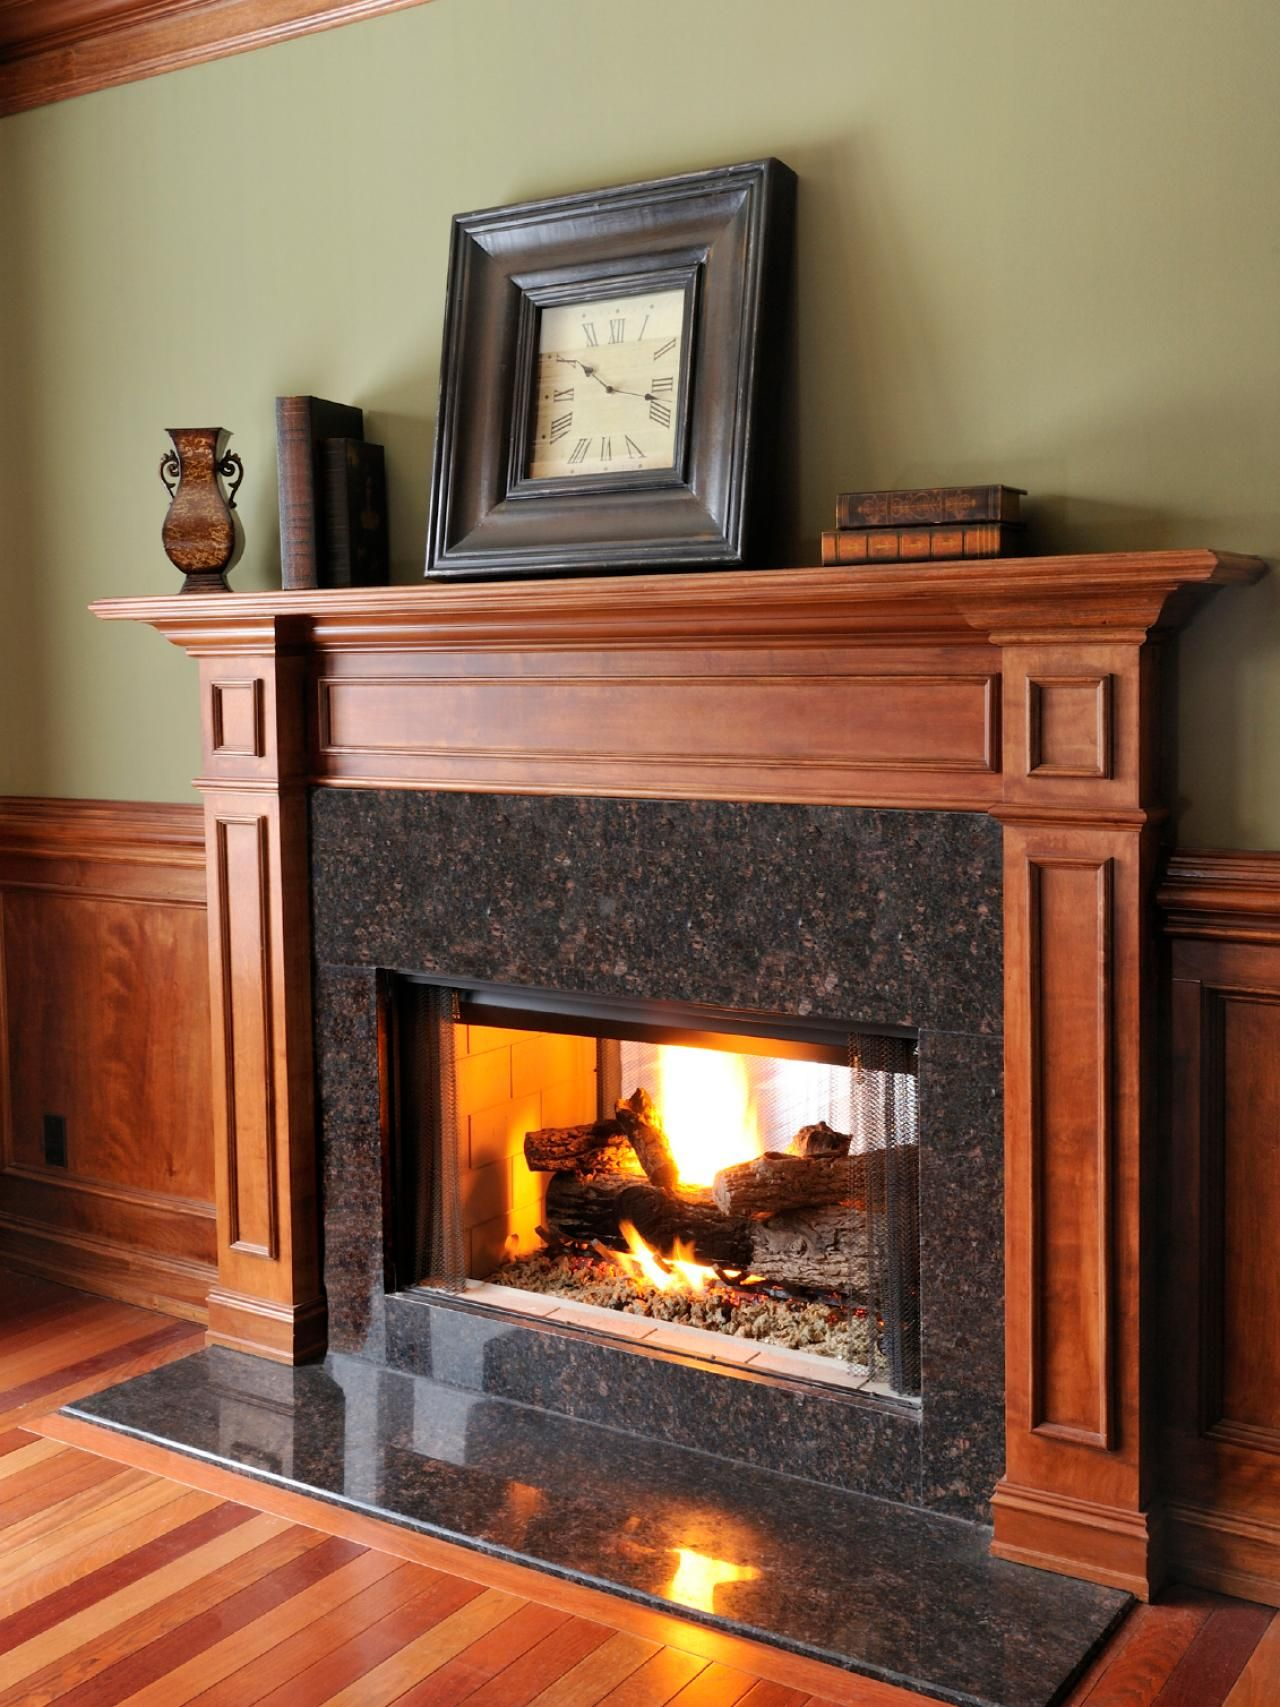 Looking To Warm Up Your Home With A Fireplace? Learn About The Various  Types Of